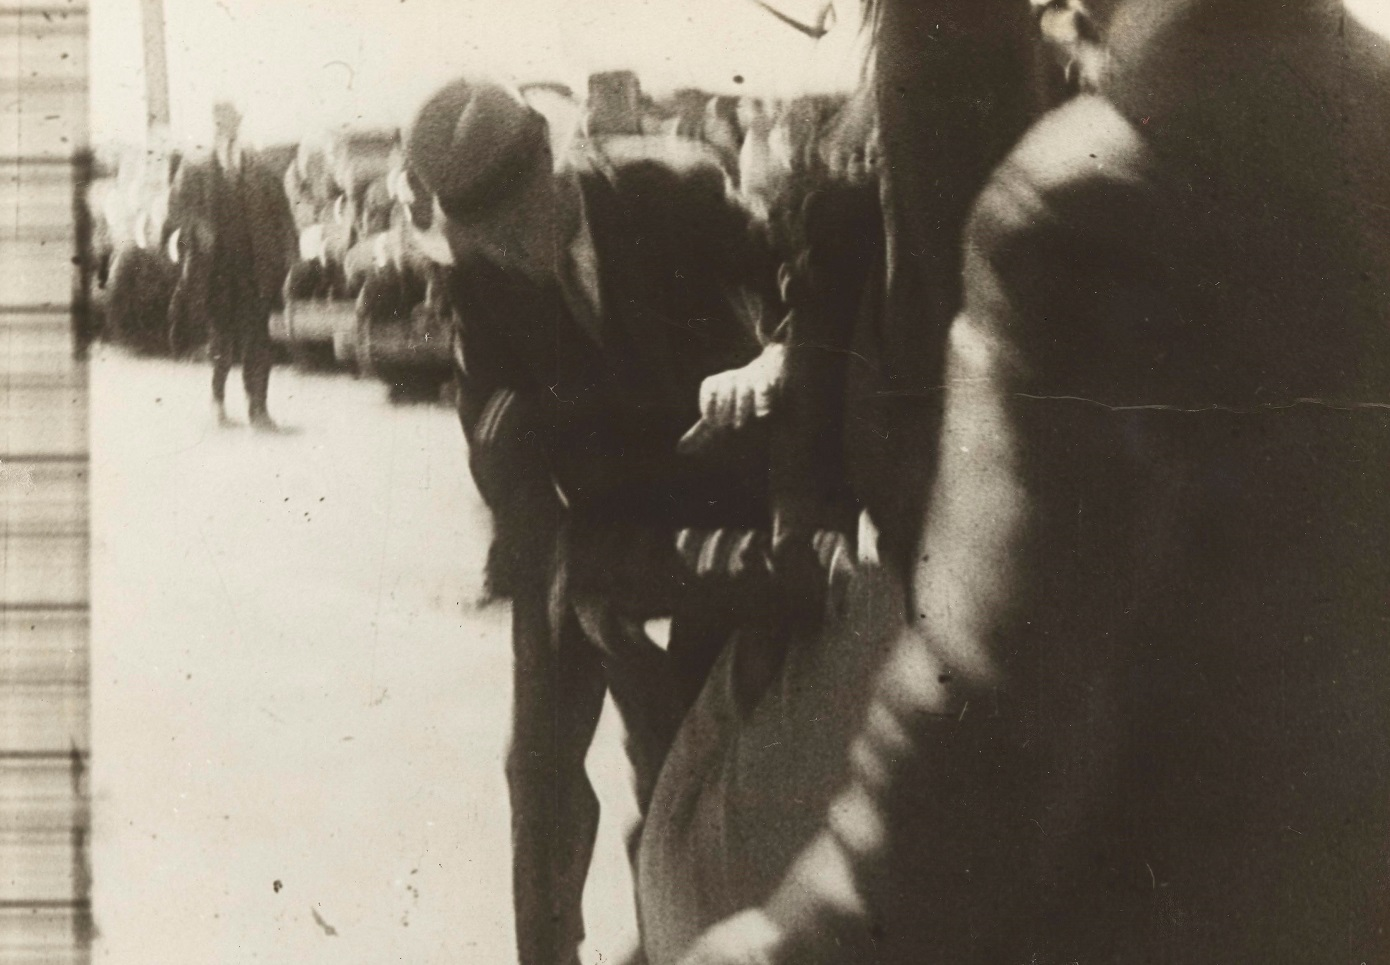 Arrest of De Groot [incl. 3 dups], photograph, from Major Francis Edward De Groot - Papers: Vol. 2 - Opening of Sydney Harbour Bridge, no 4 1932, A 4946